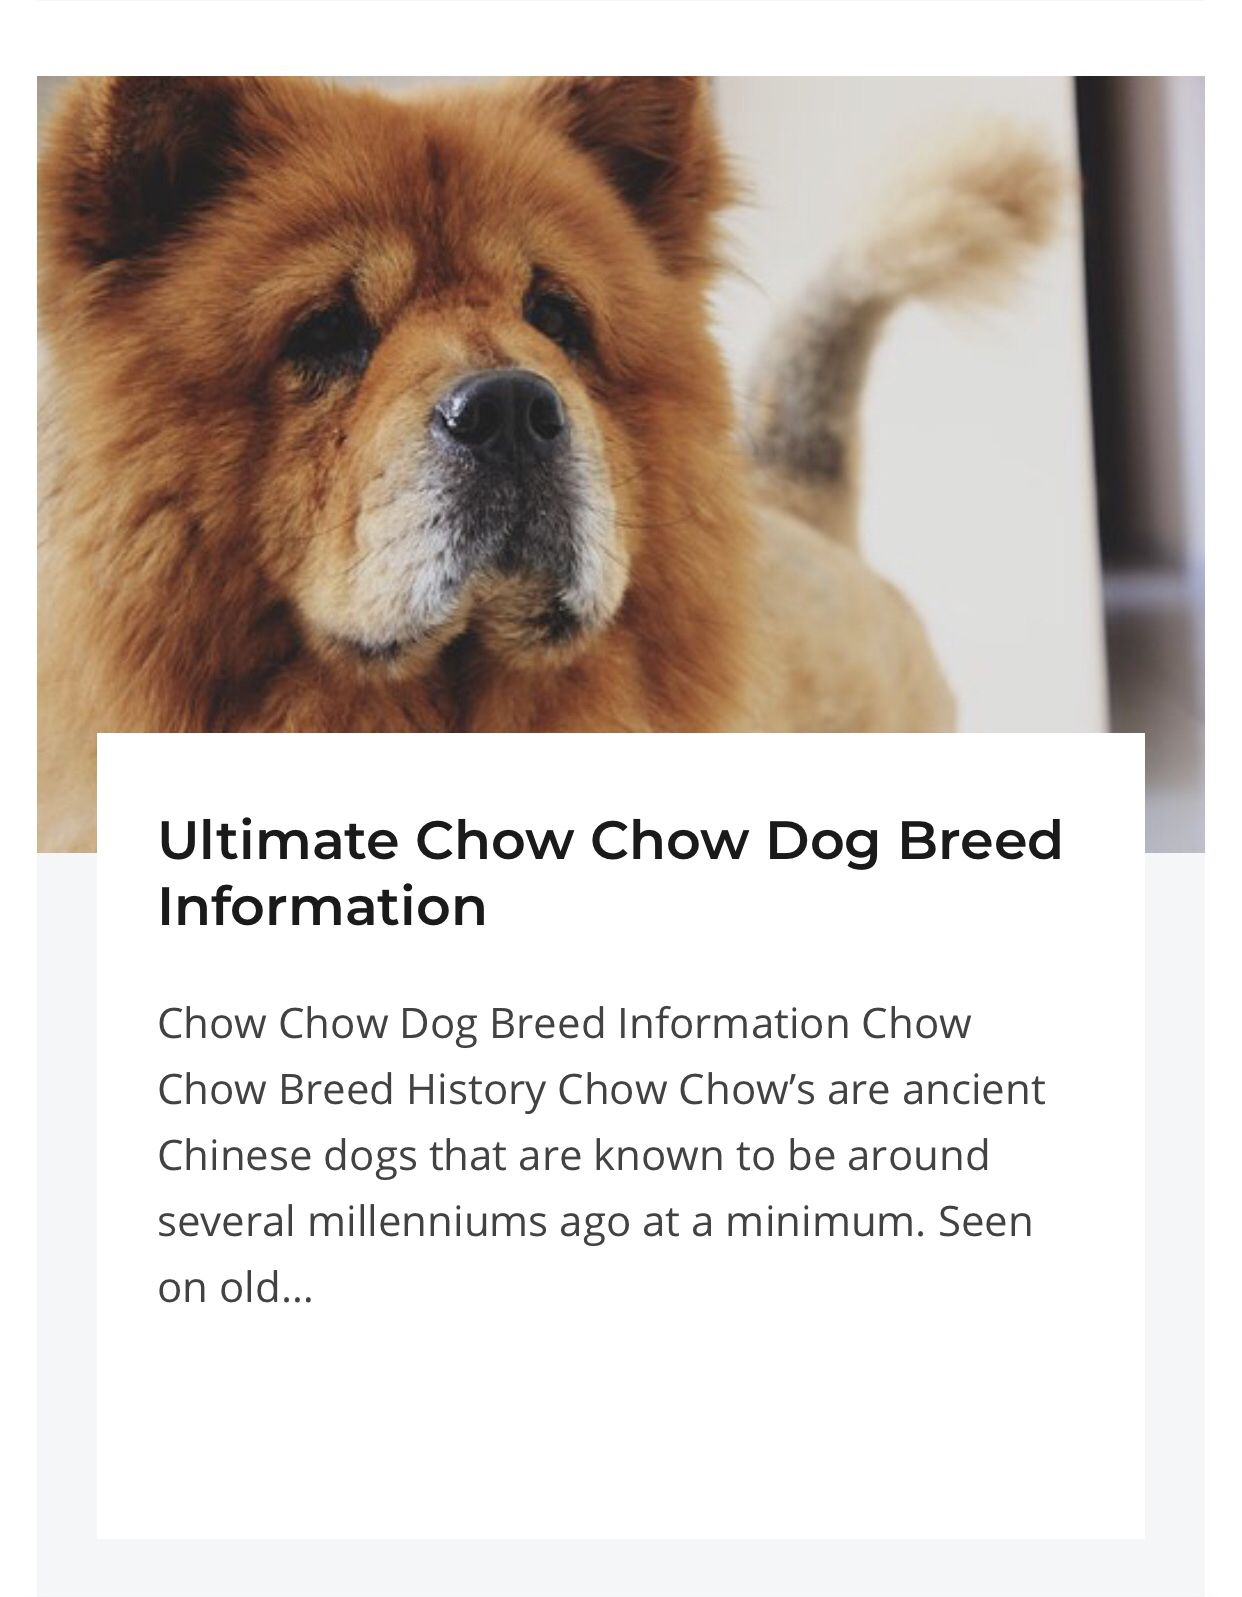 Chow Puppies Blue Chow Chow Chow Chow Puppies Chow Chow Puppy Chow